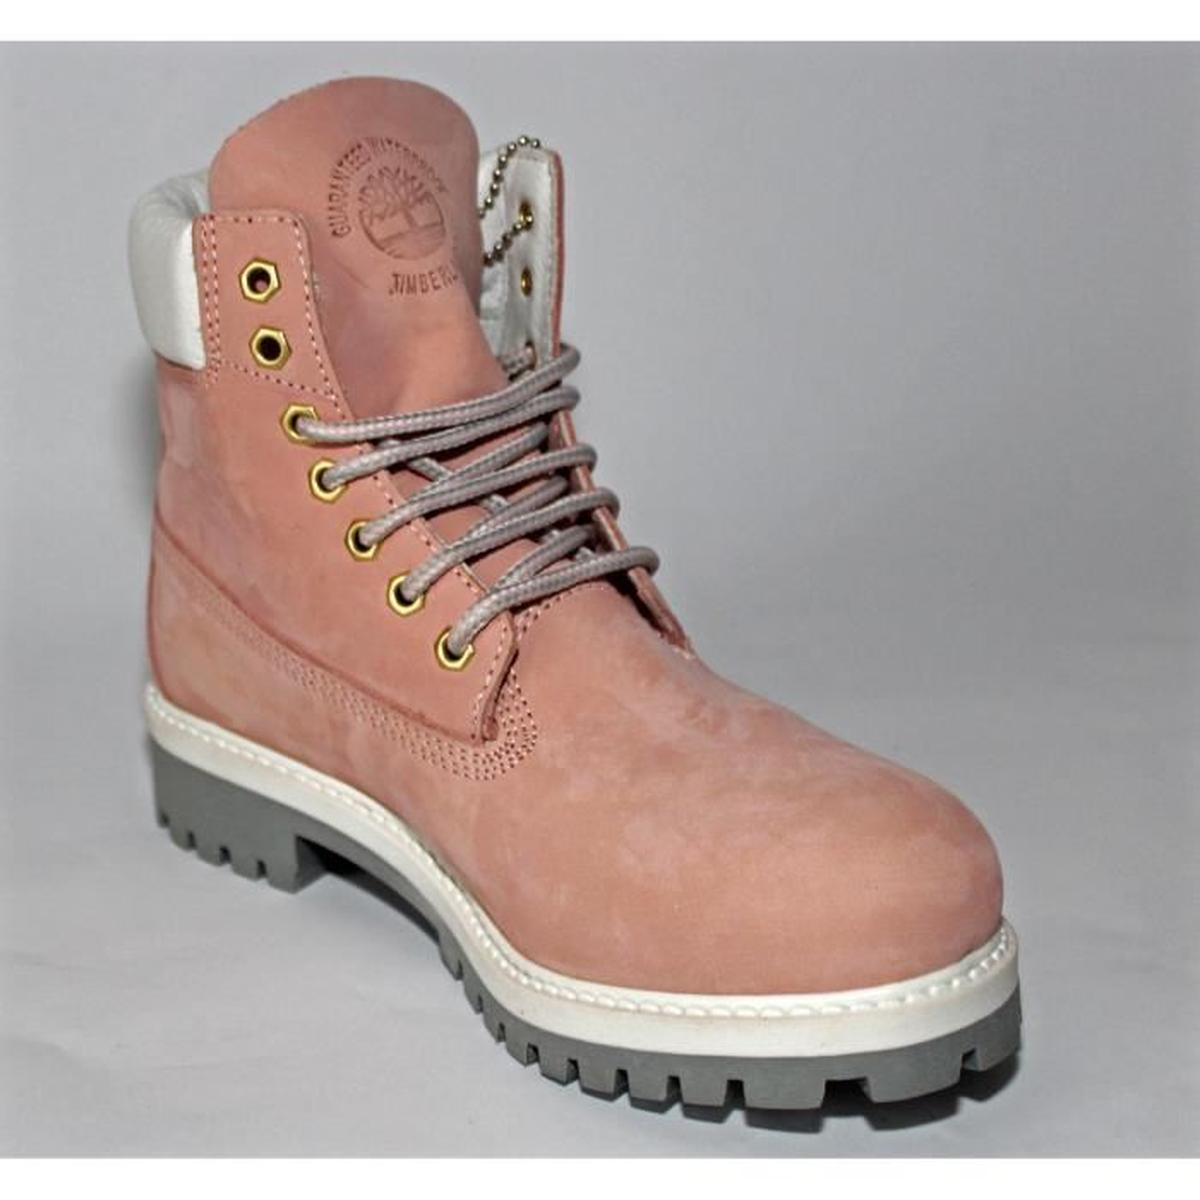 Chaussure Occasion Acheter Homme Homme Timberland Timberland Chaussure Occasion Acheter qFXx4FU